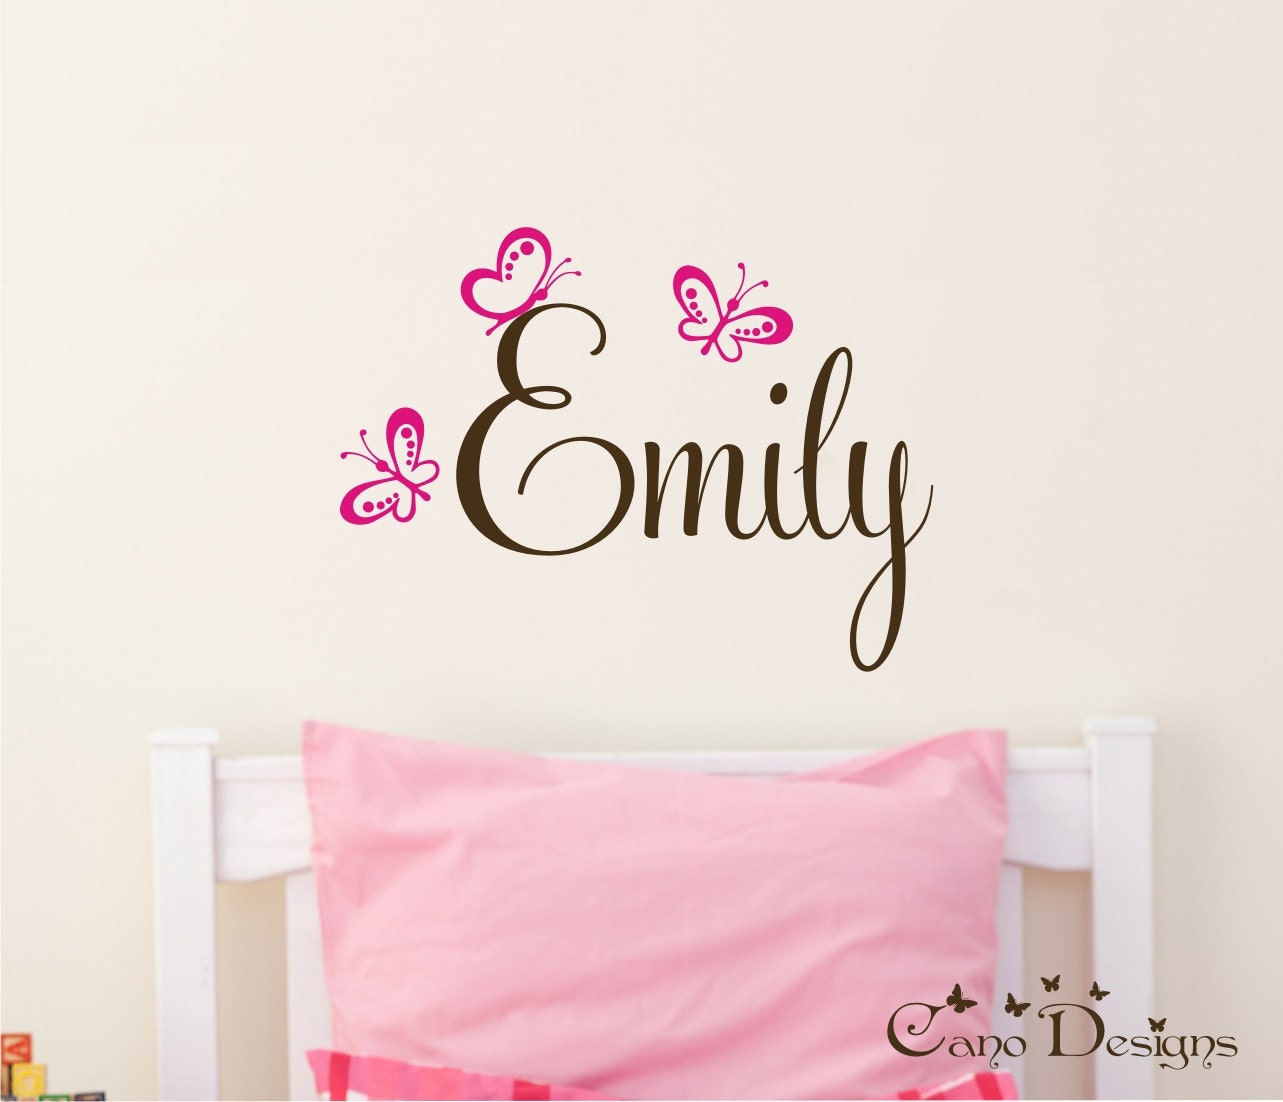 Personalized name wall decals hd images